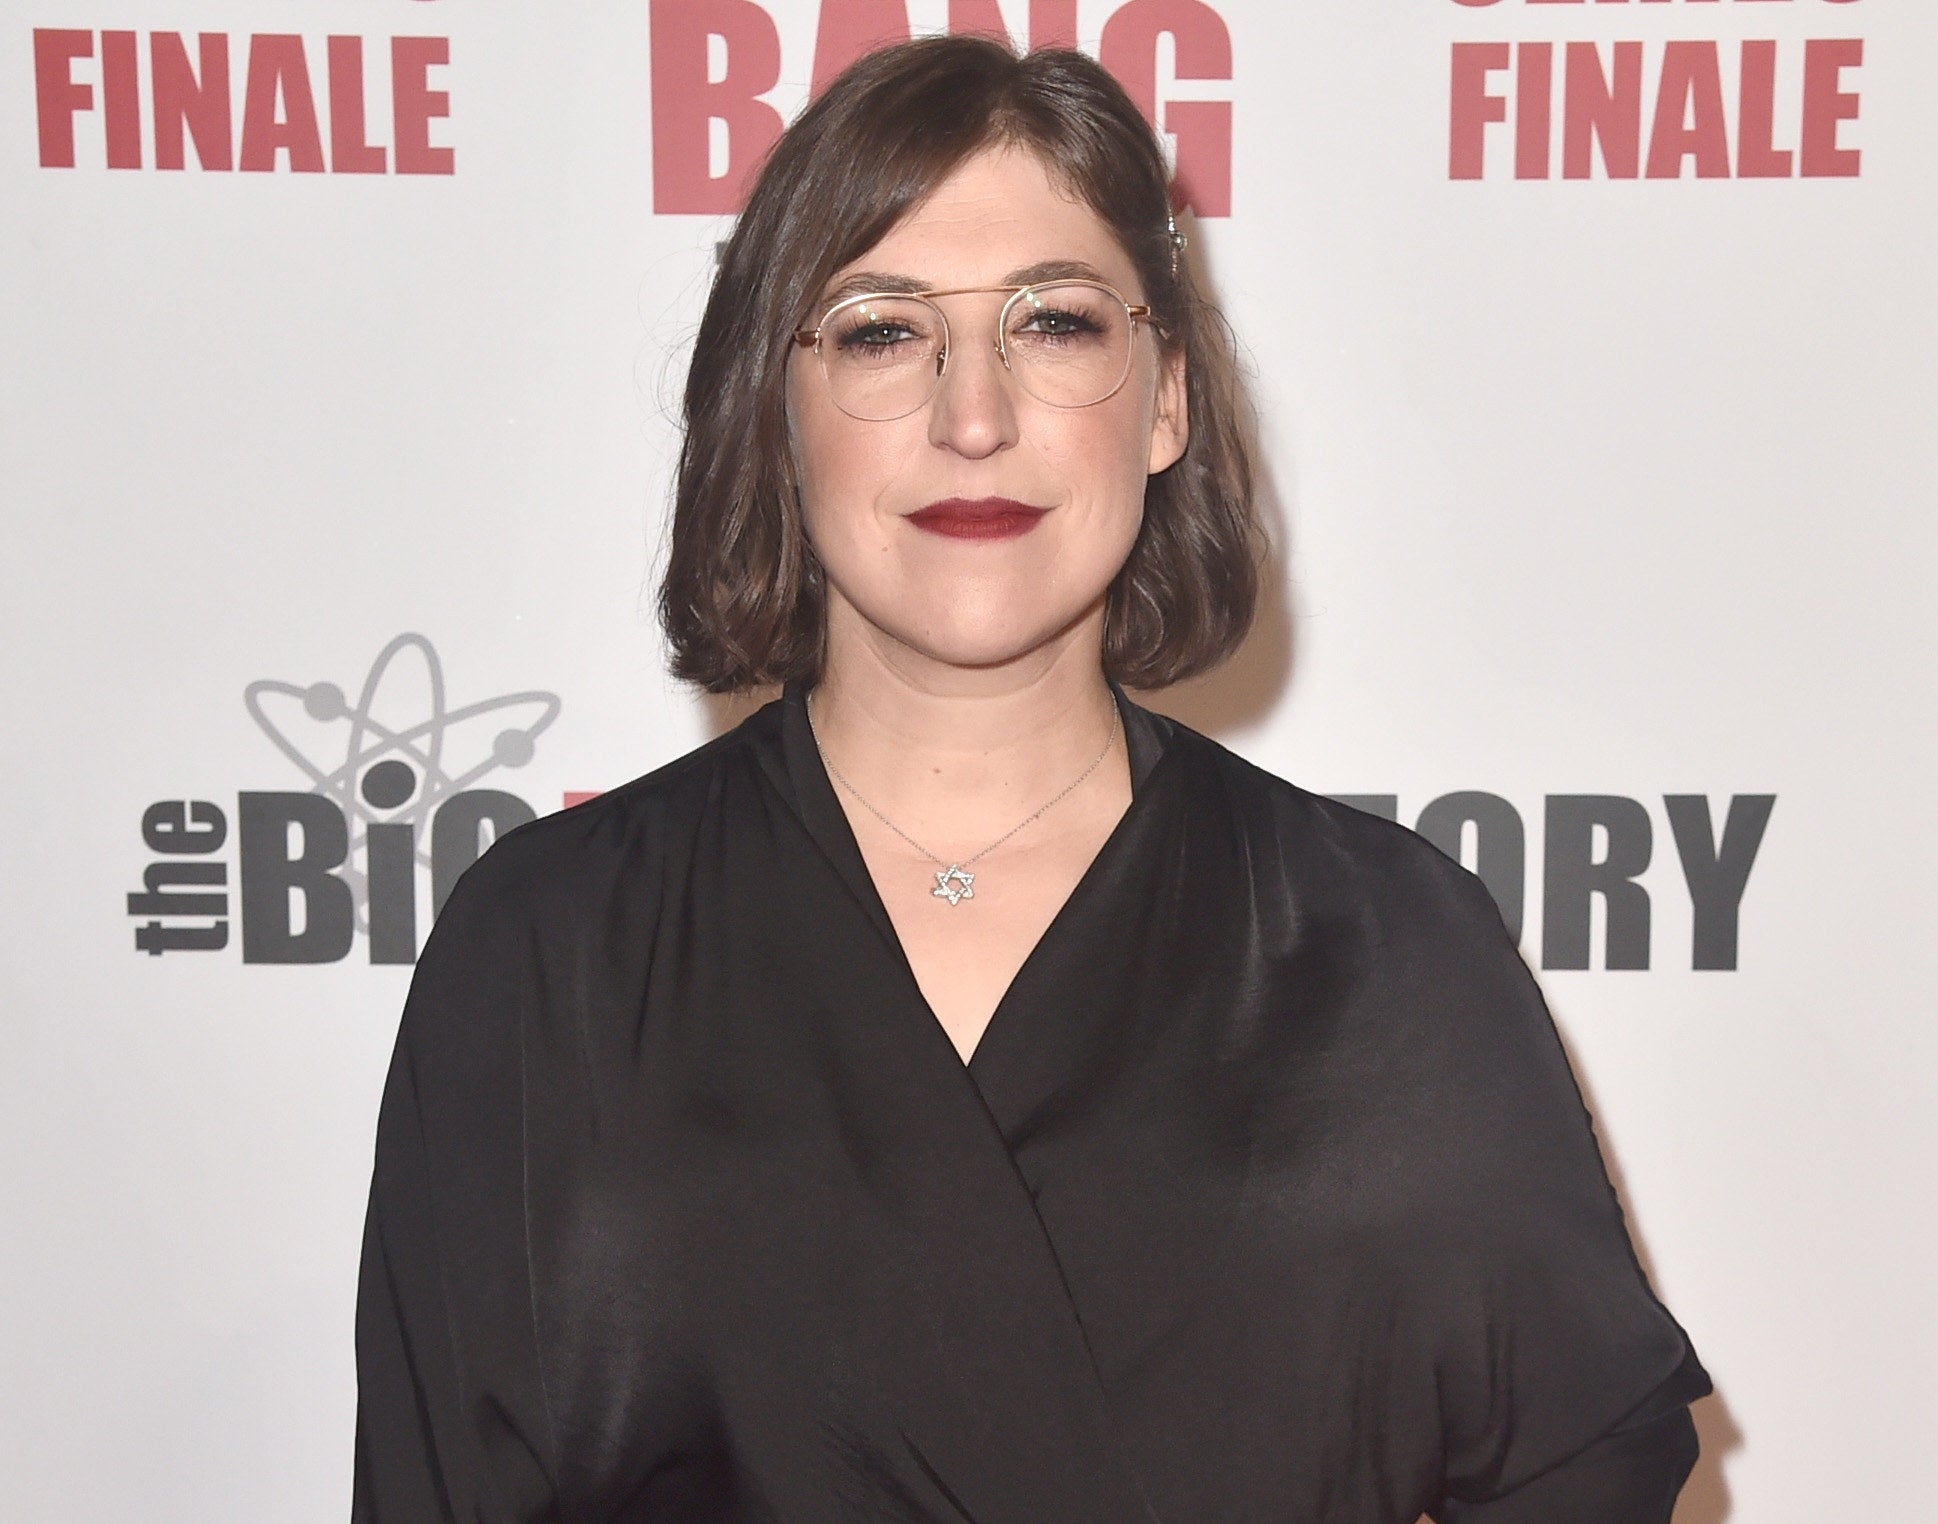 Mayim wears a black wrap top at an event